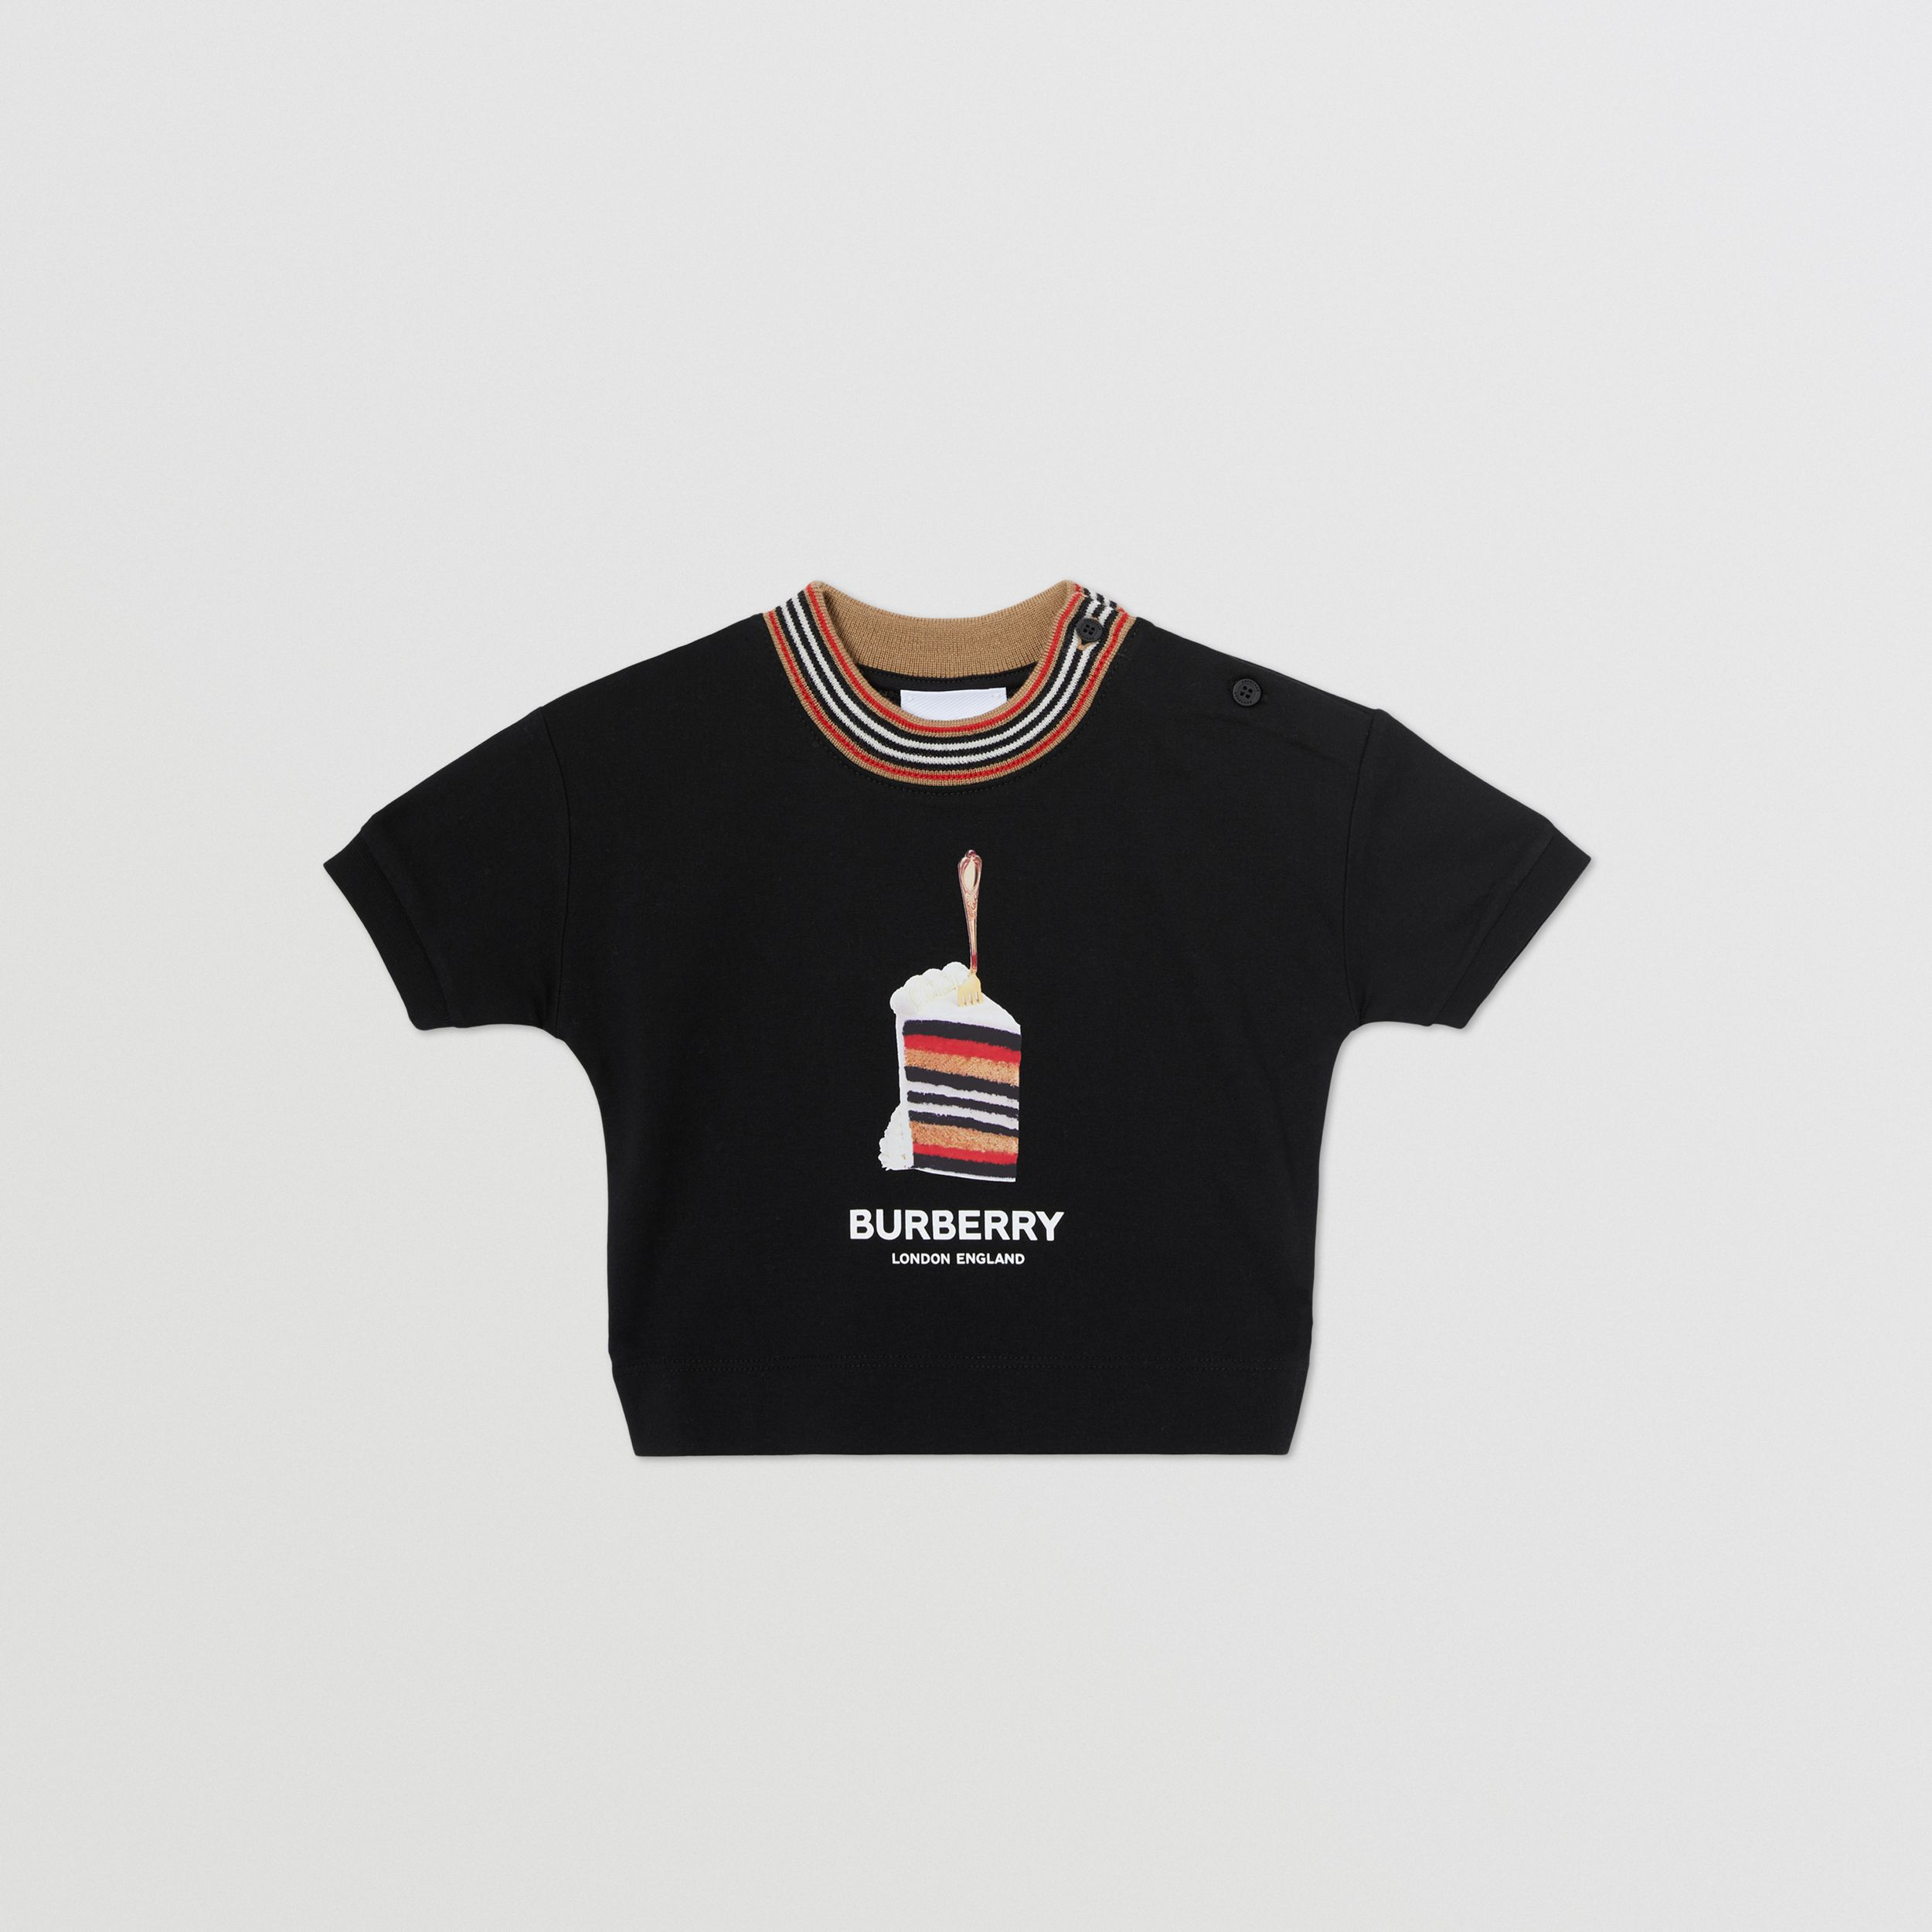 Cake Print Cotton T-shirt in Black - Children | Burberry - 1